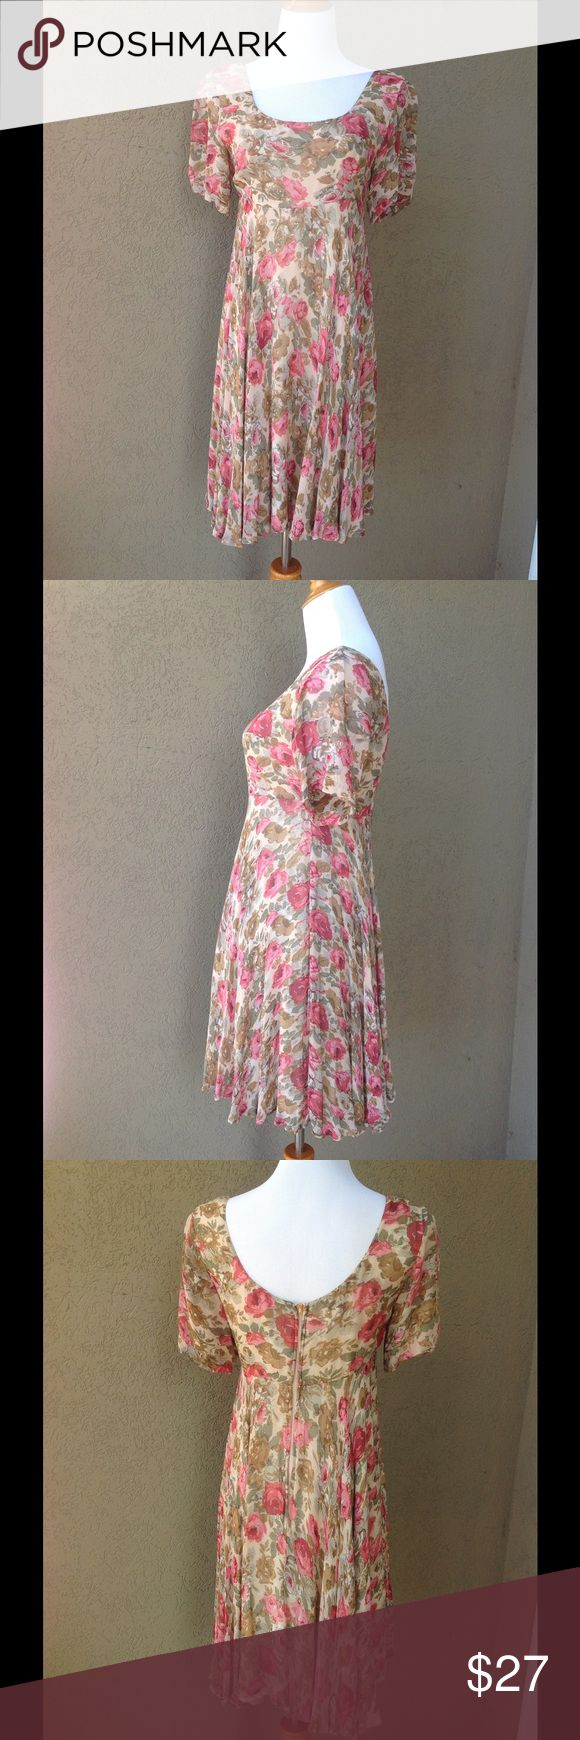 """JASMINE by KVM Vintage Floral Dress Tea stained tones, rose pinks and olive greens on a nude/dark cream background. Bodice and Skirt are lined in ecru/cream. Back zip that glides easily. One little snag on back of right sleeve as shown in photo. Beautiful condition with no holes or stains. Approx measurements laid flat: U-U 16.5-17"""" across, waist 14"""" at seam, length 37"""". Vintage Dresses"""